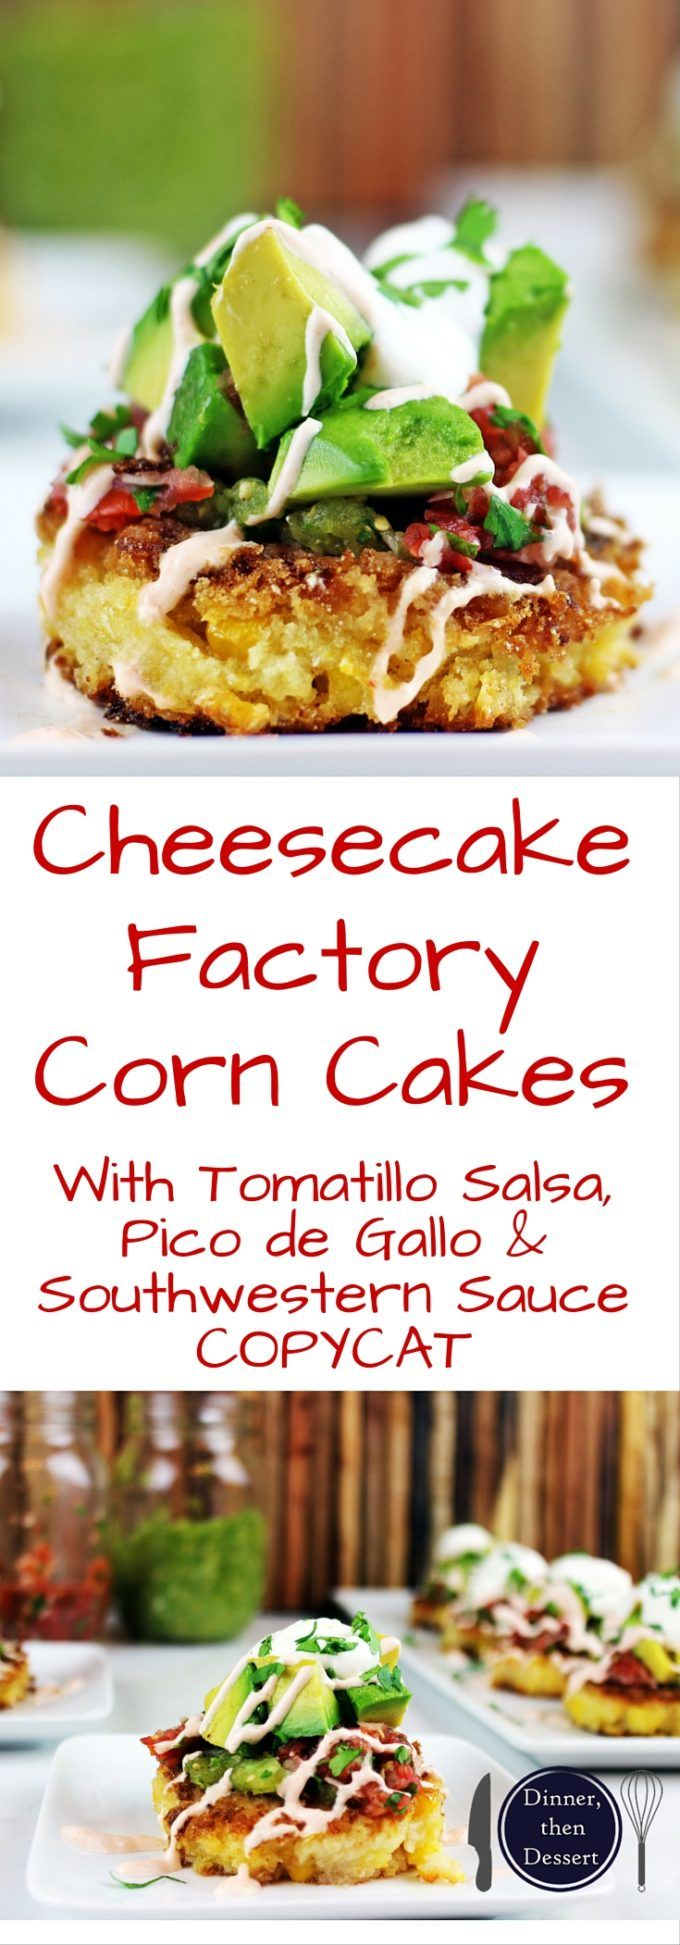 Tender, buttery corn cakes topped with tomatillo salsa, pico de gallo, southwestern sauce, avocadoes, cilantro and sour cream! A true Cheesecake Factory Favorite brought into your own kitchen!! Easy to make and really fast with a food processor!